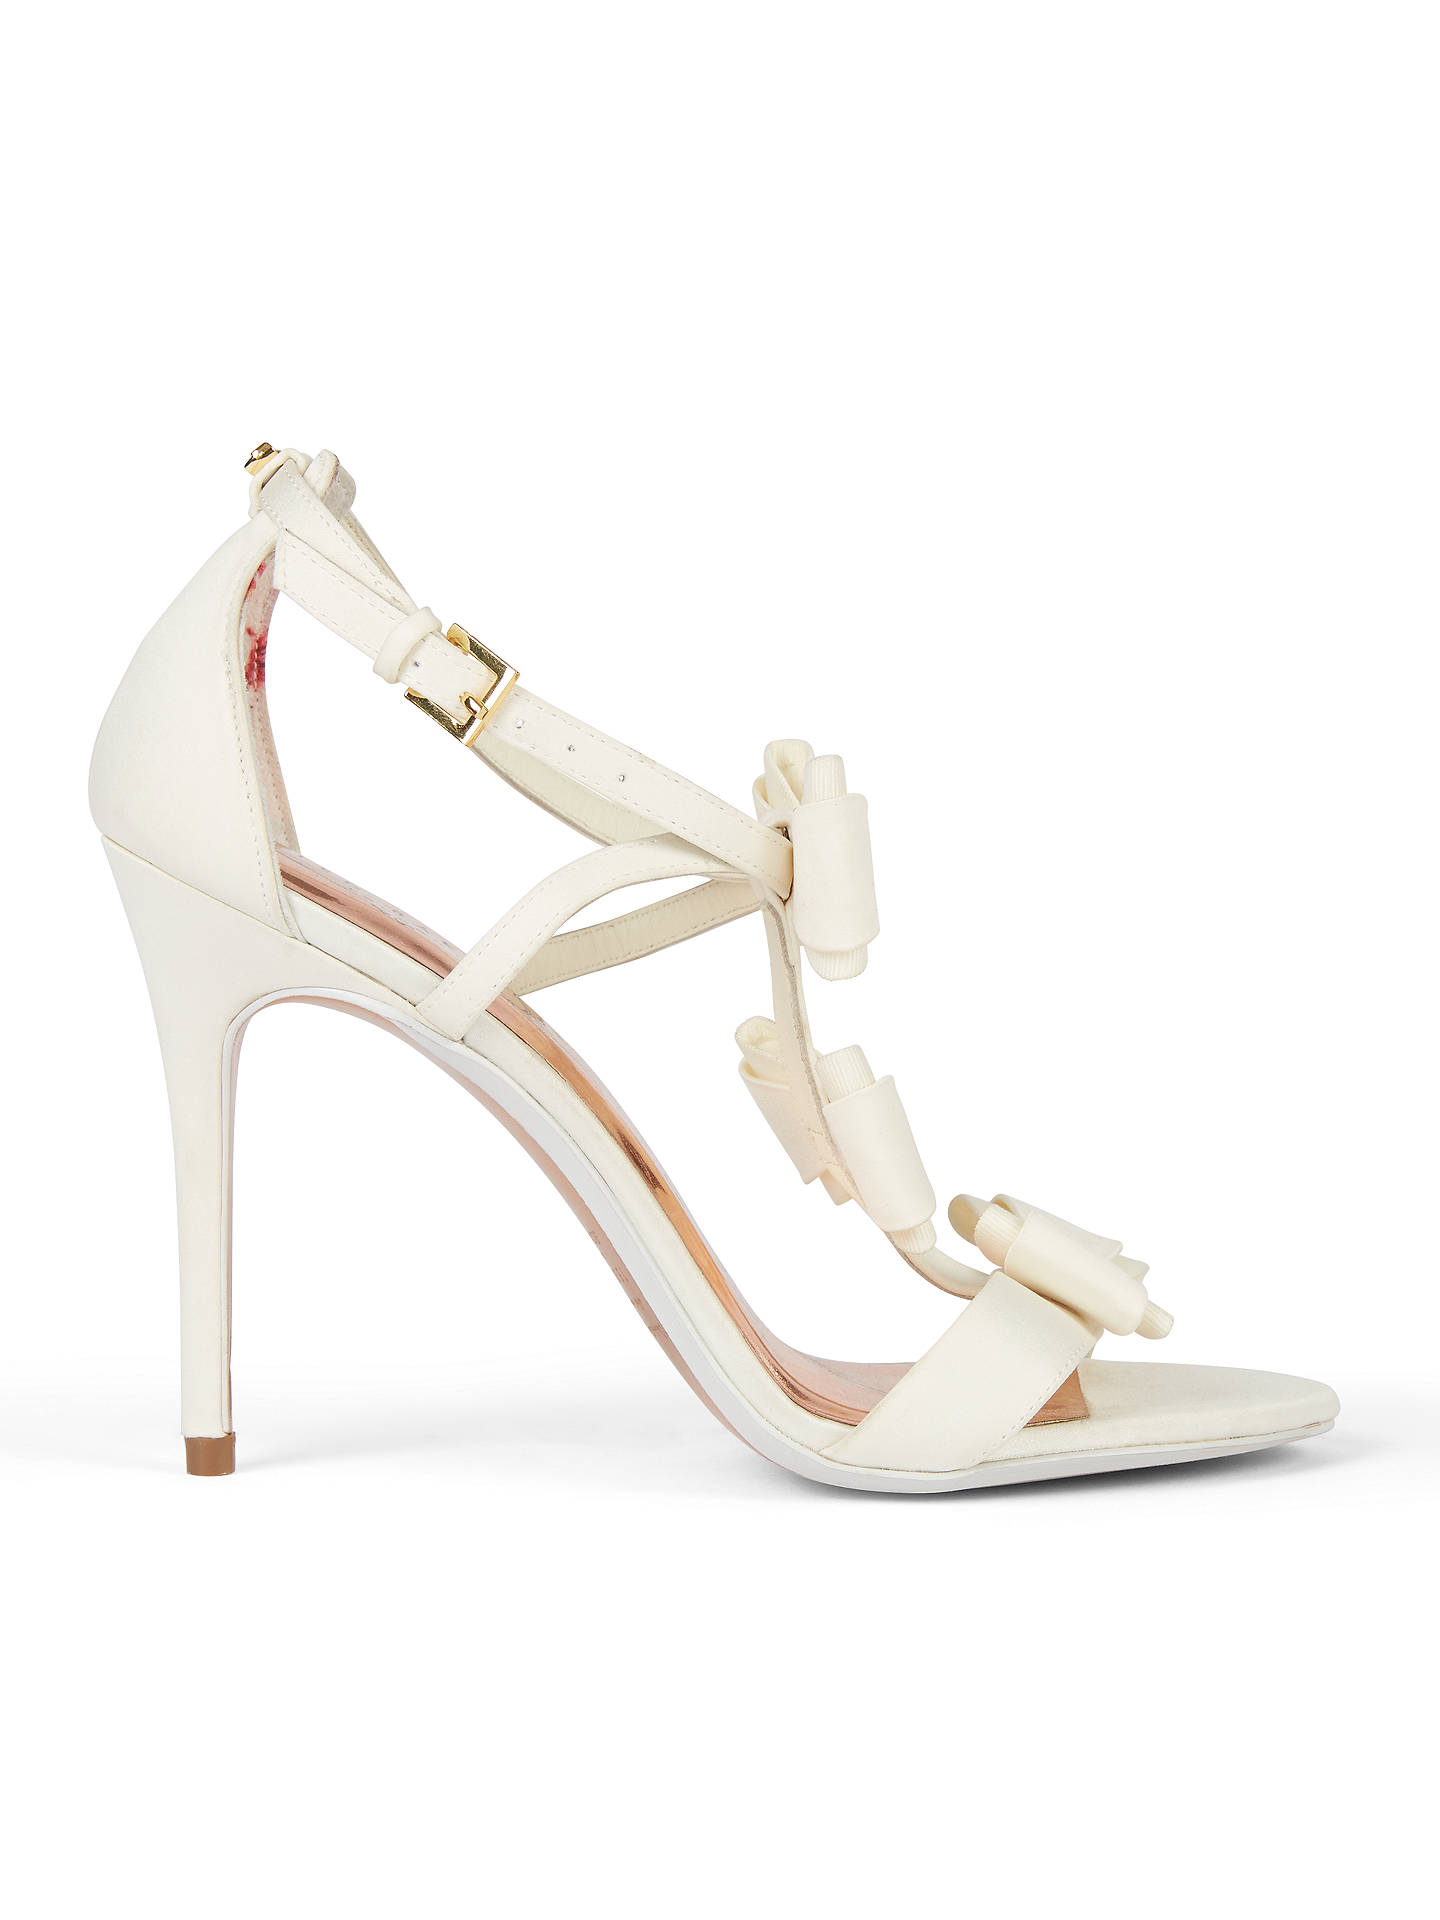 02f72a336ea Ted Baker Tie the Knot Appolini Bow Stiletto Sandals at John Lewis ...